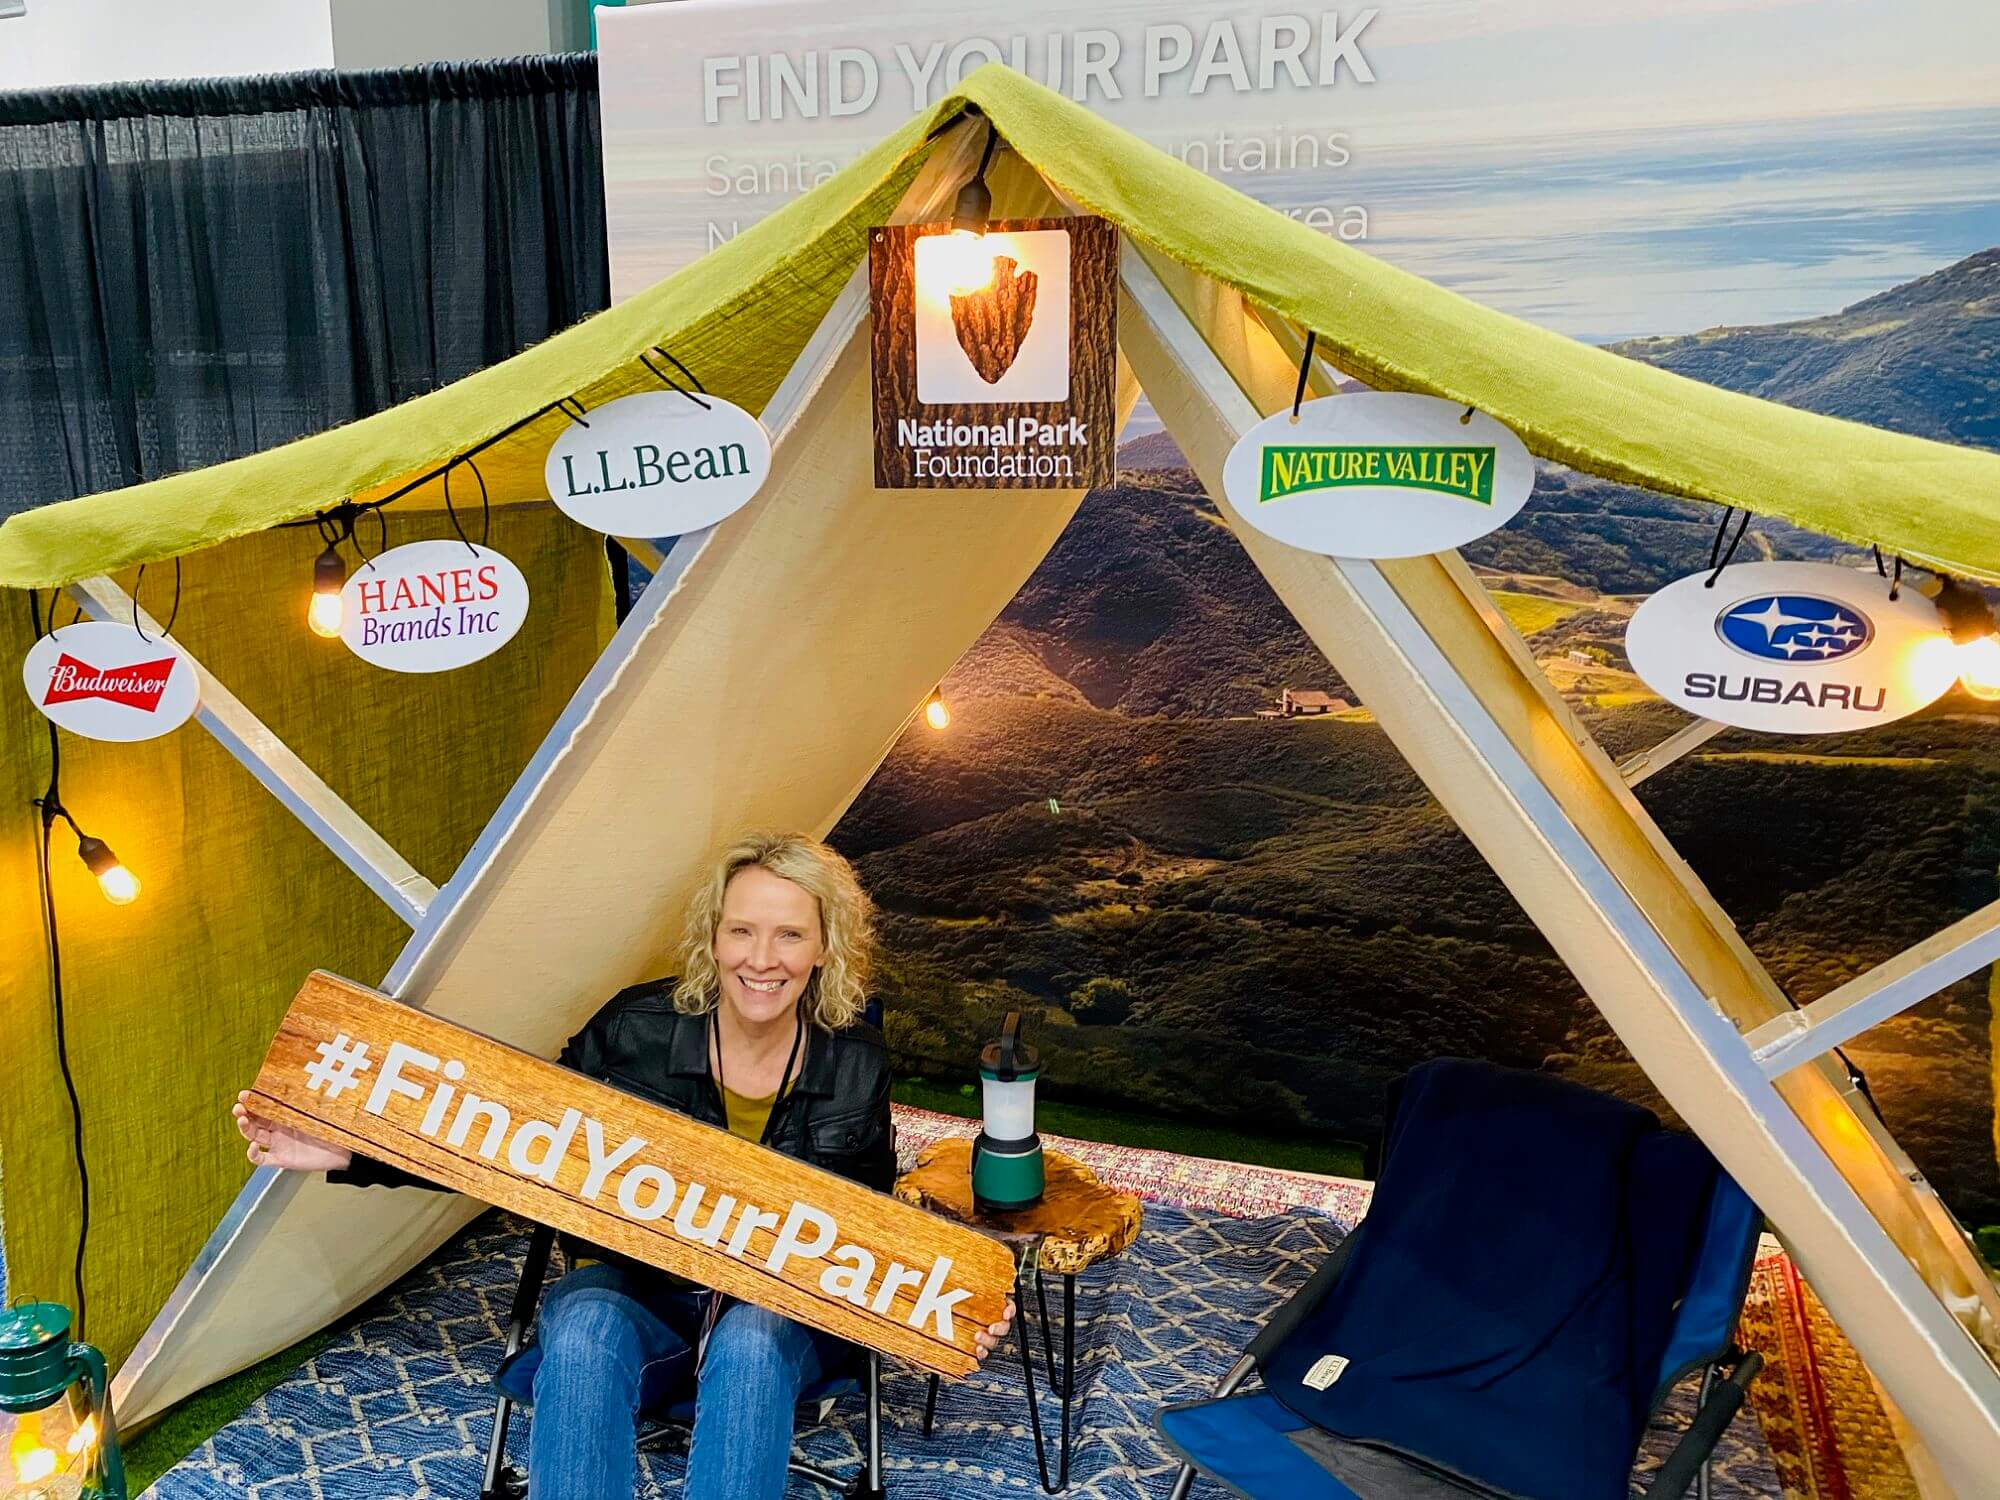 Wendy at the Travel and Adventure Show